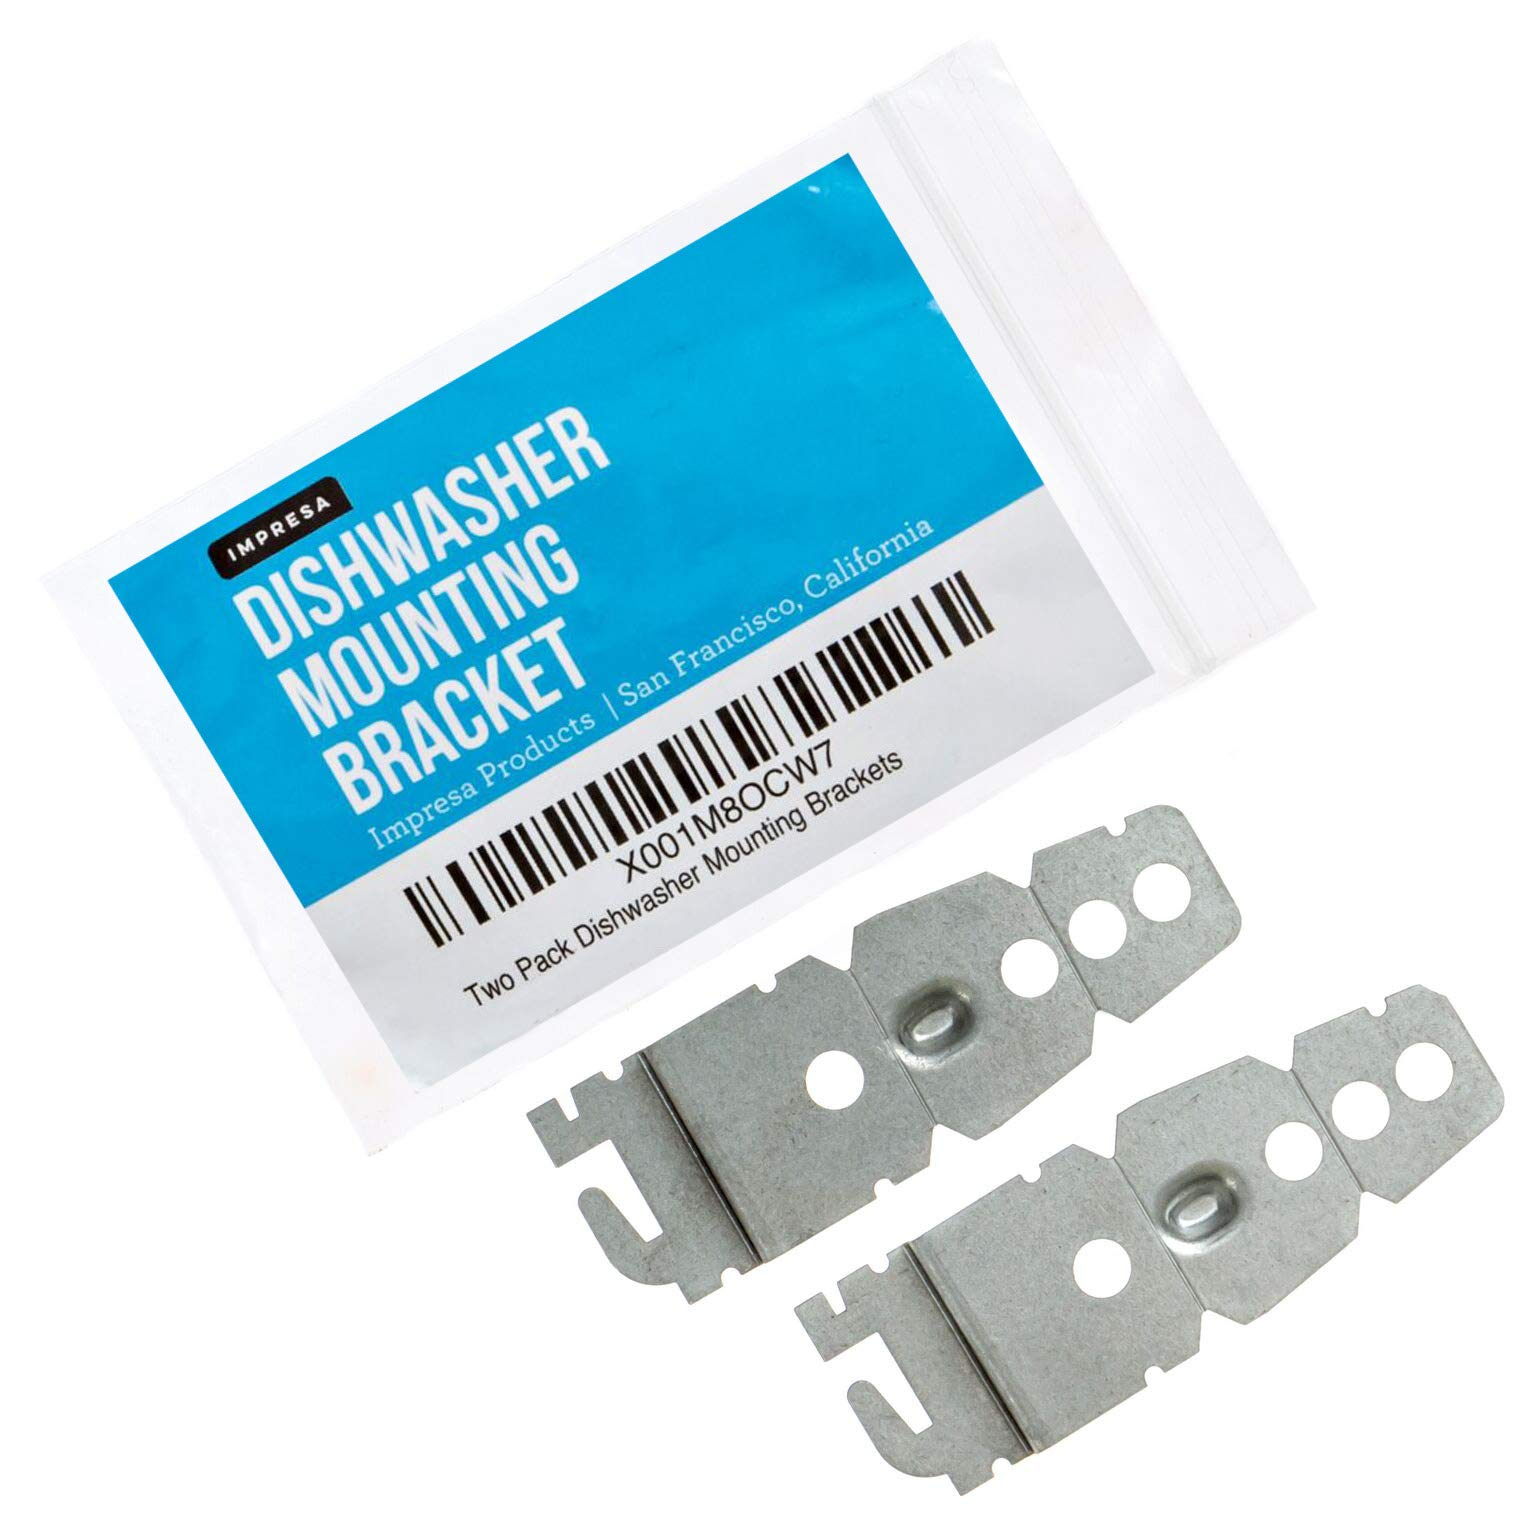 2-Pack Undercounter Dishwasher Bracket Replacement - Whirlpool -Compatible - Compare to 8269145 / WP8269145 - Replacement Dishwasher Upper Mounting Bracket